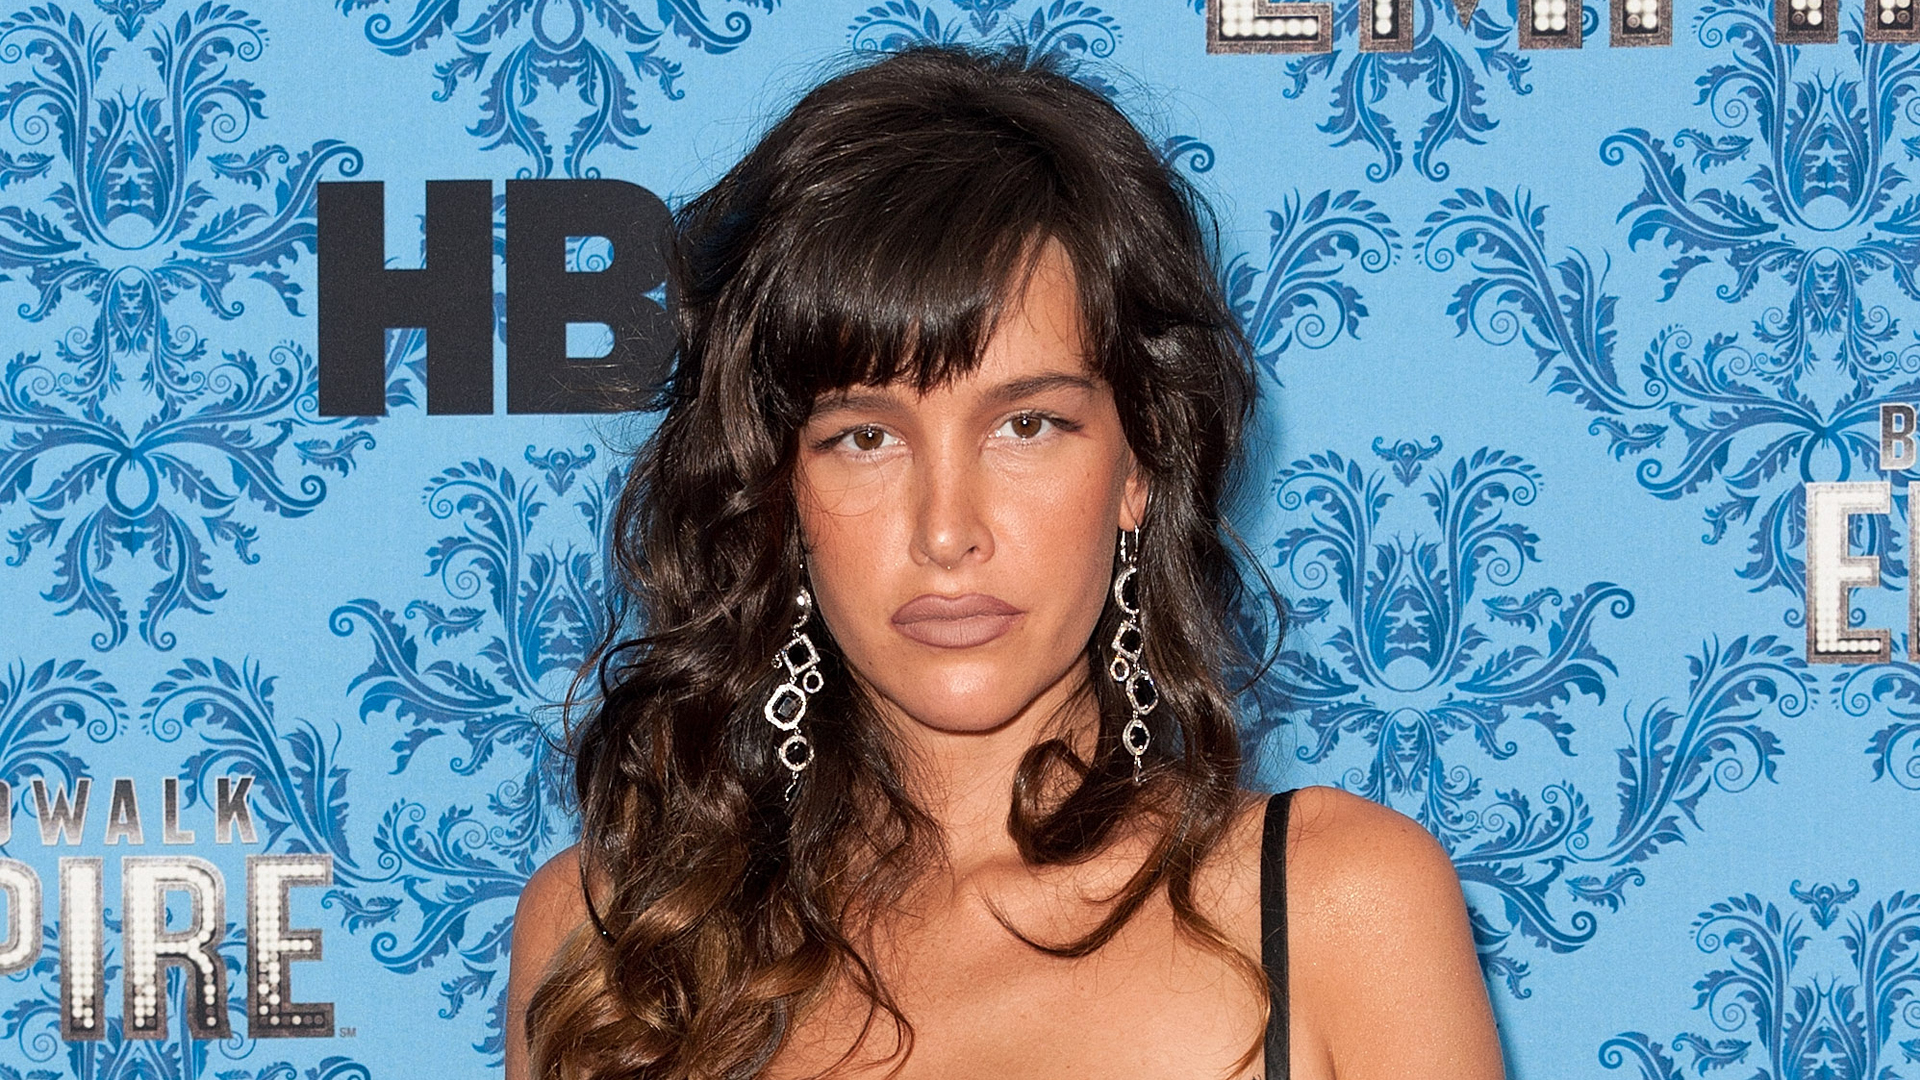 """Actress Paz de la Huerta attends the """"Boardwalk Empire"""" Season 2 premiere at the Ziegfeld Theater in New York on Sept. 14, 2011 (Credit: D Dipasupil/Getty Images)"""